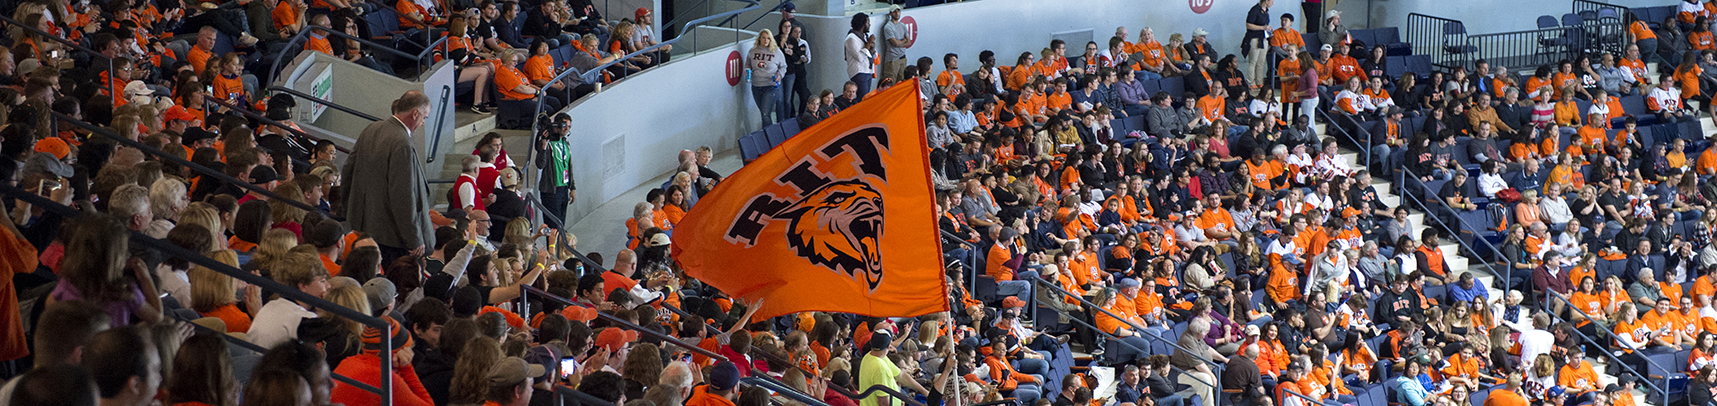 Image of RIT Fans at hockey game.